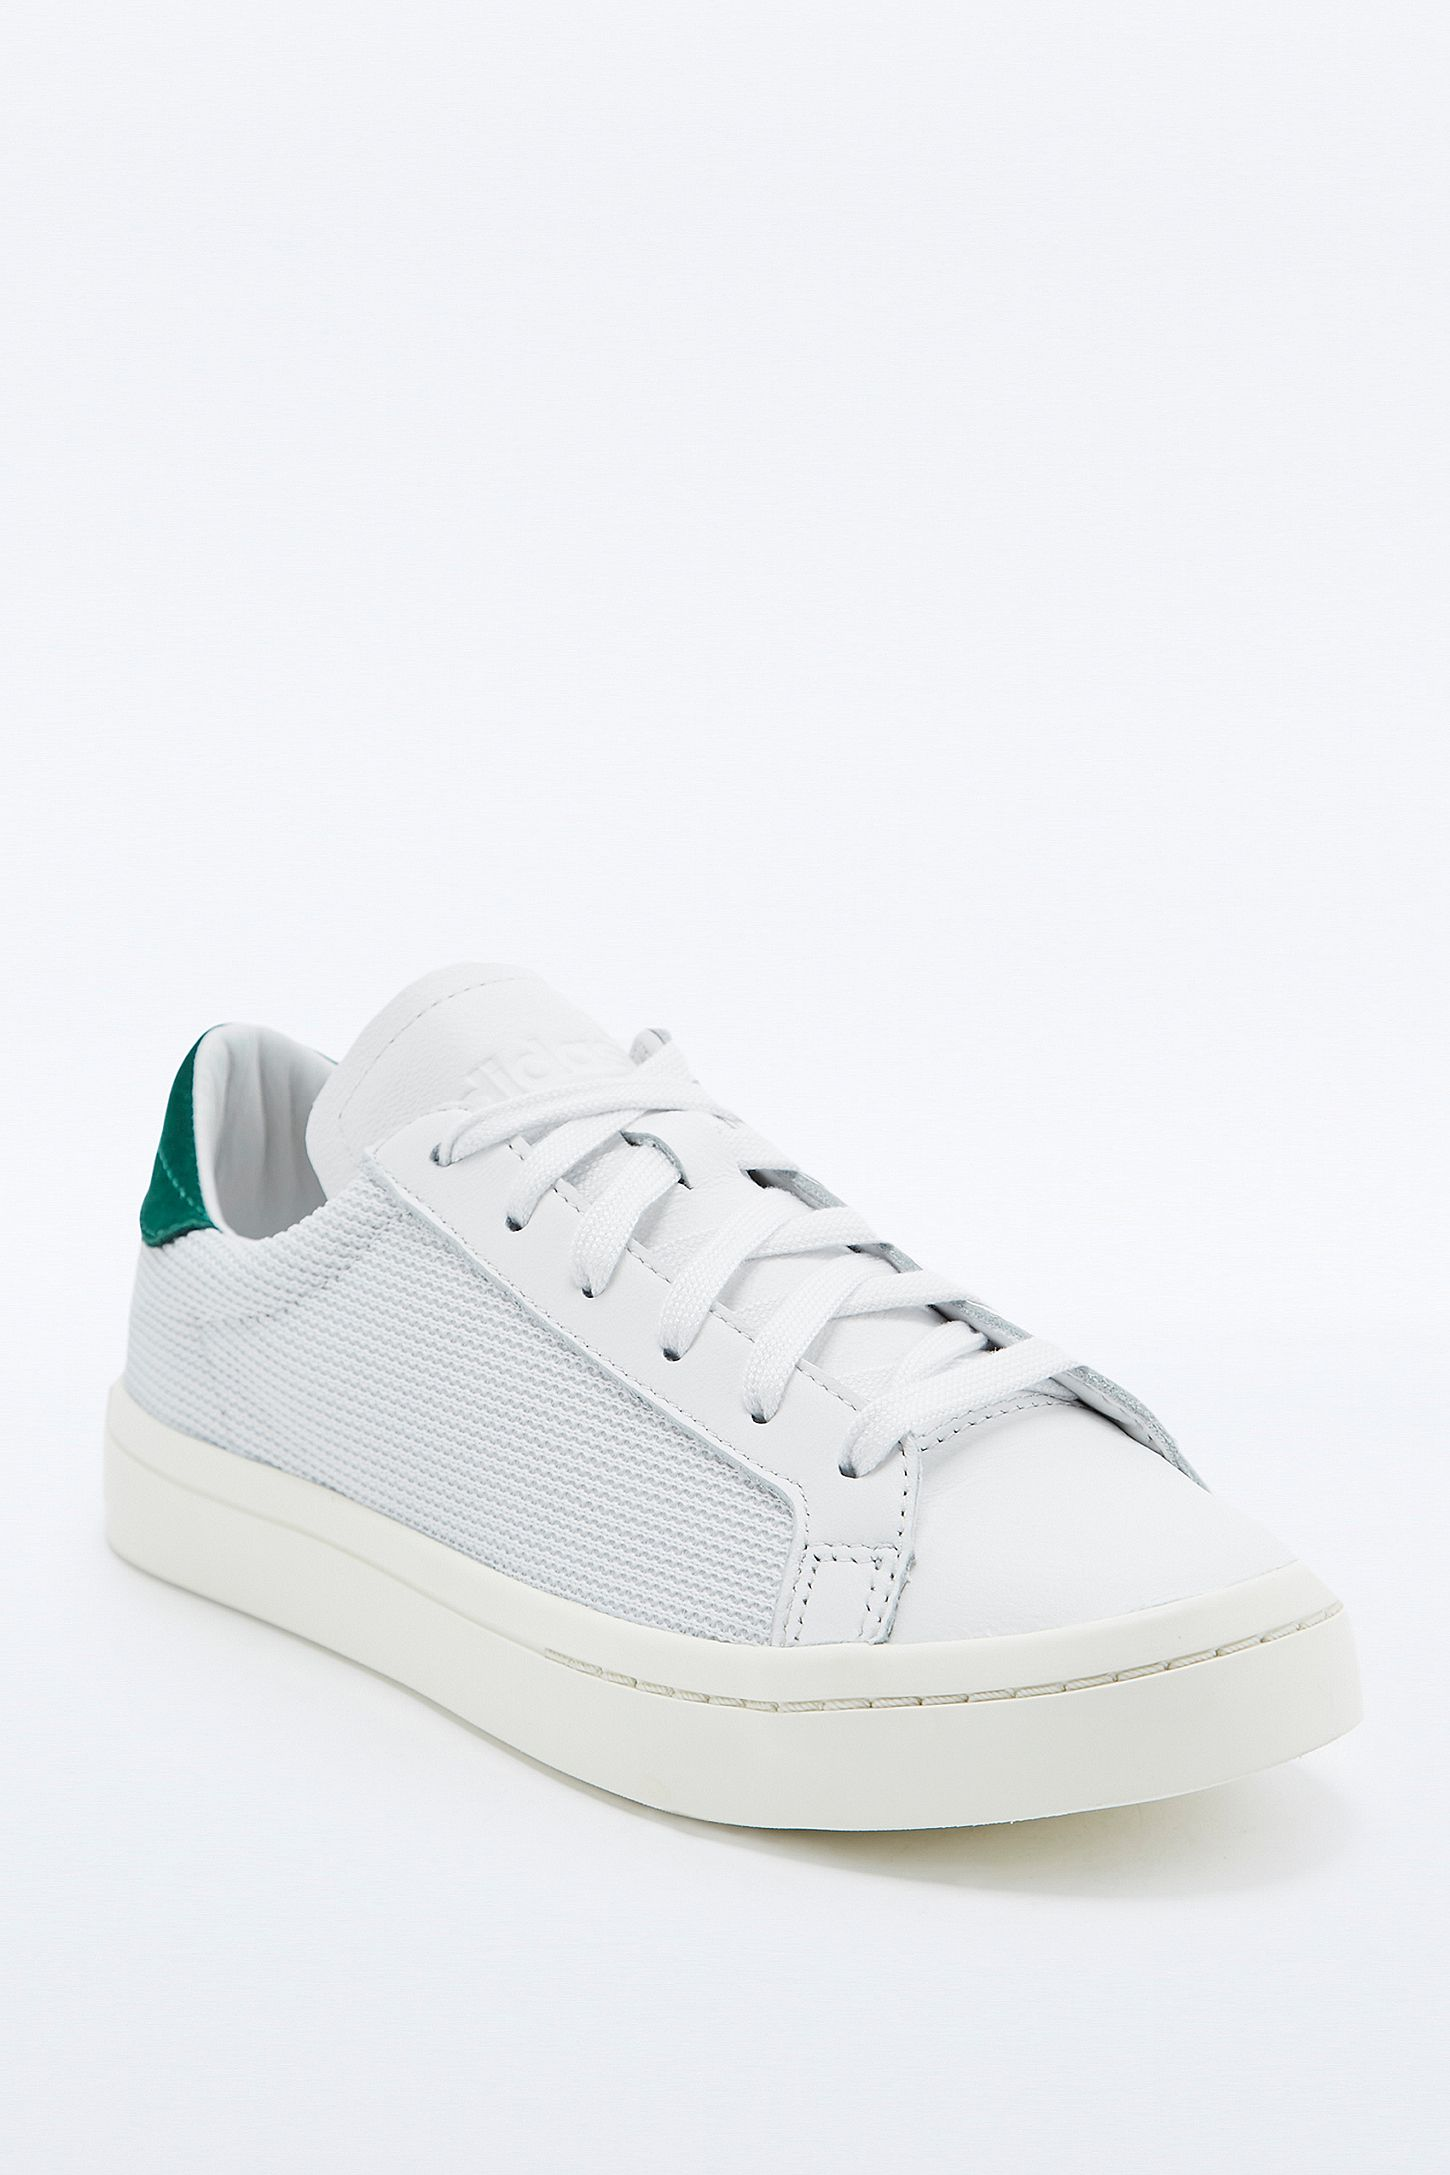 Baskets or ADIDAS COURTVANTAGE Bessec | Things